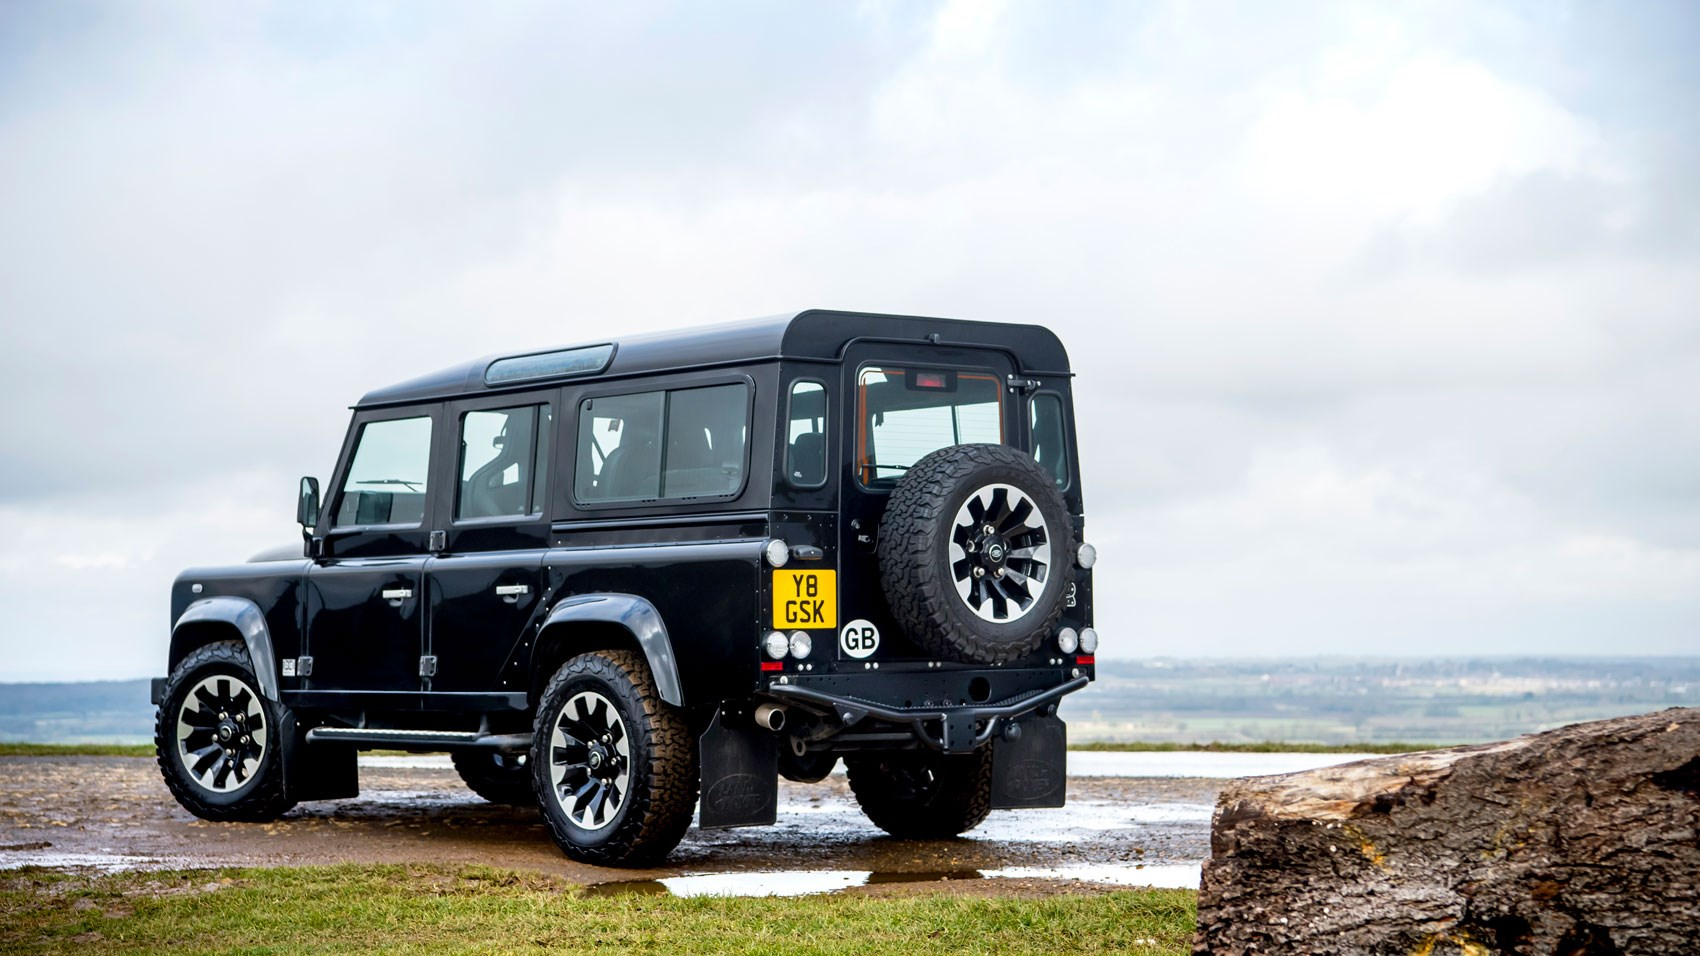 landrover new heritage defender land sale cost rover news autoevolution up edition for